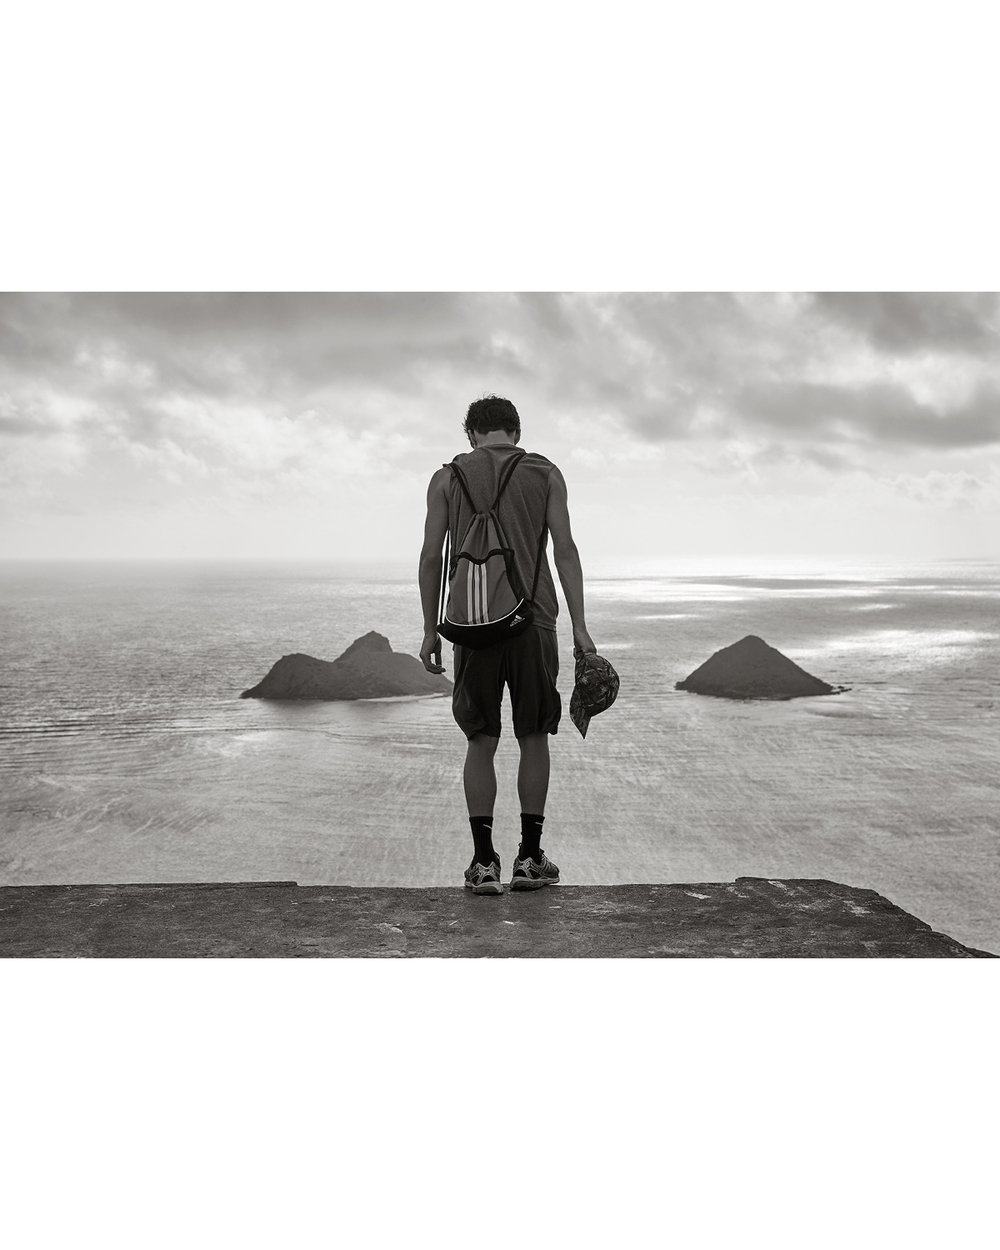 VIEW TOWARDS MOKU NUI AND MOKU IKI ISLANDS